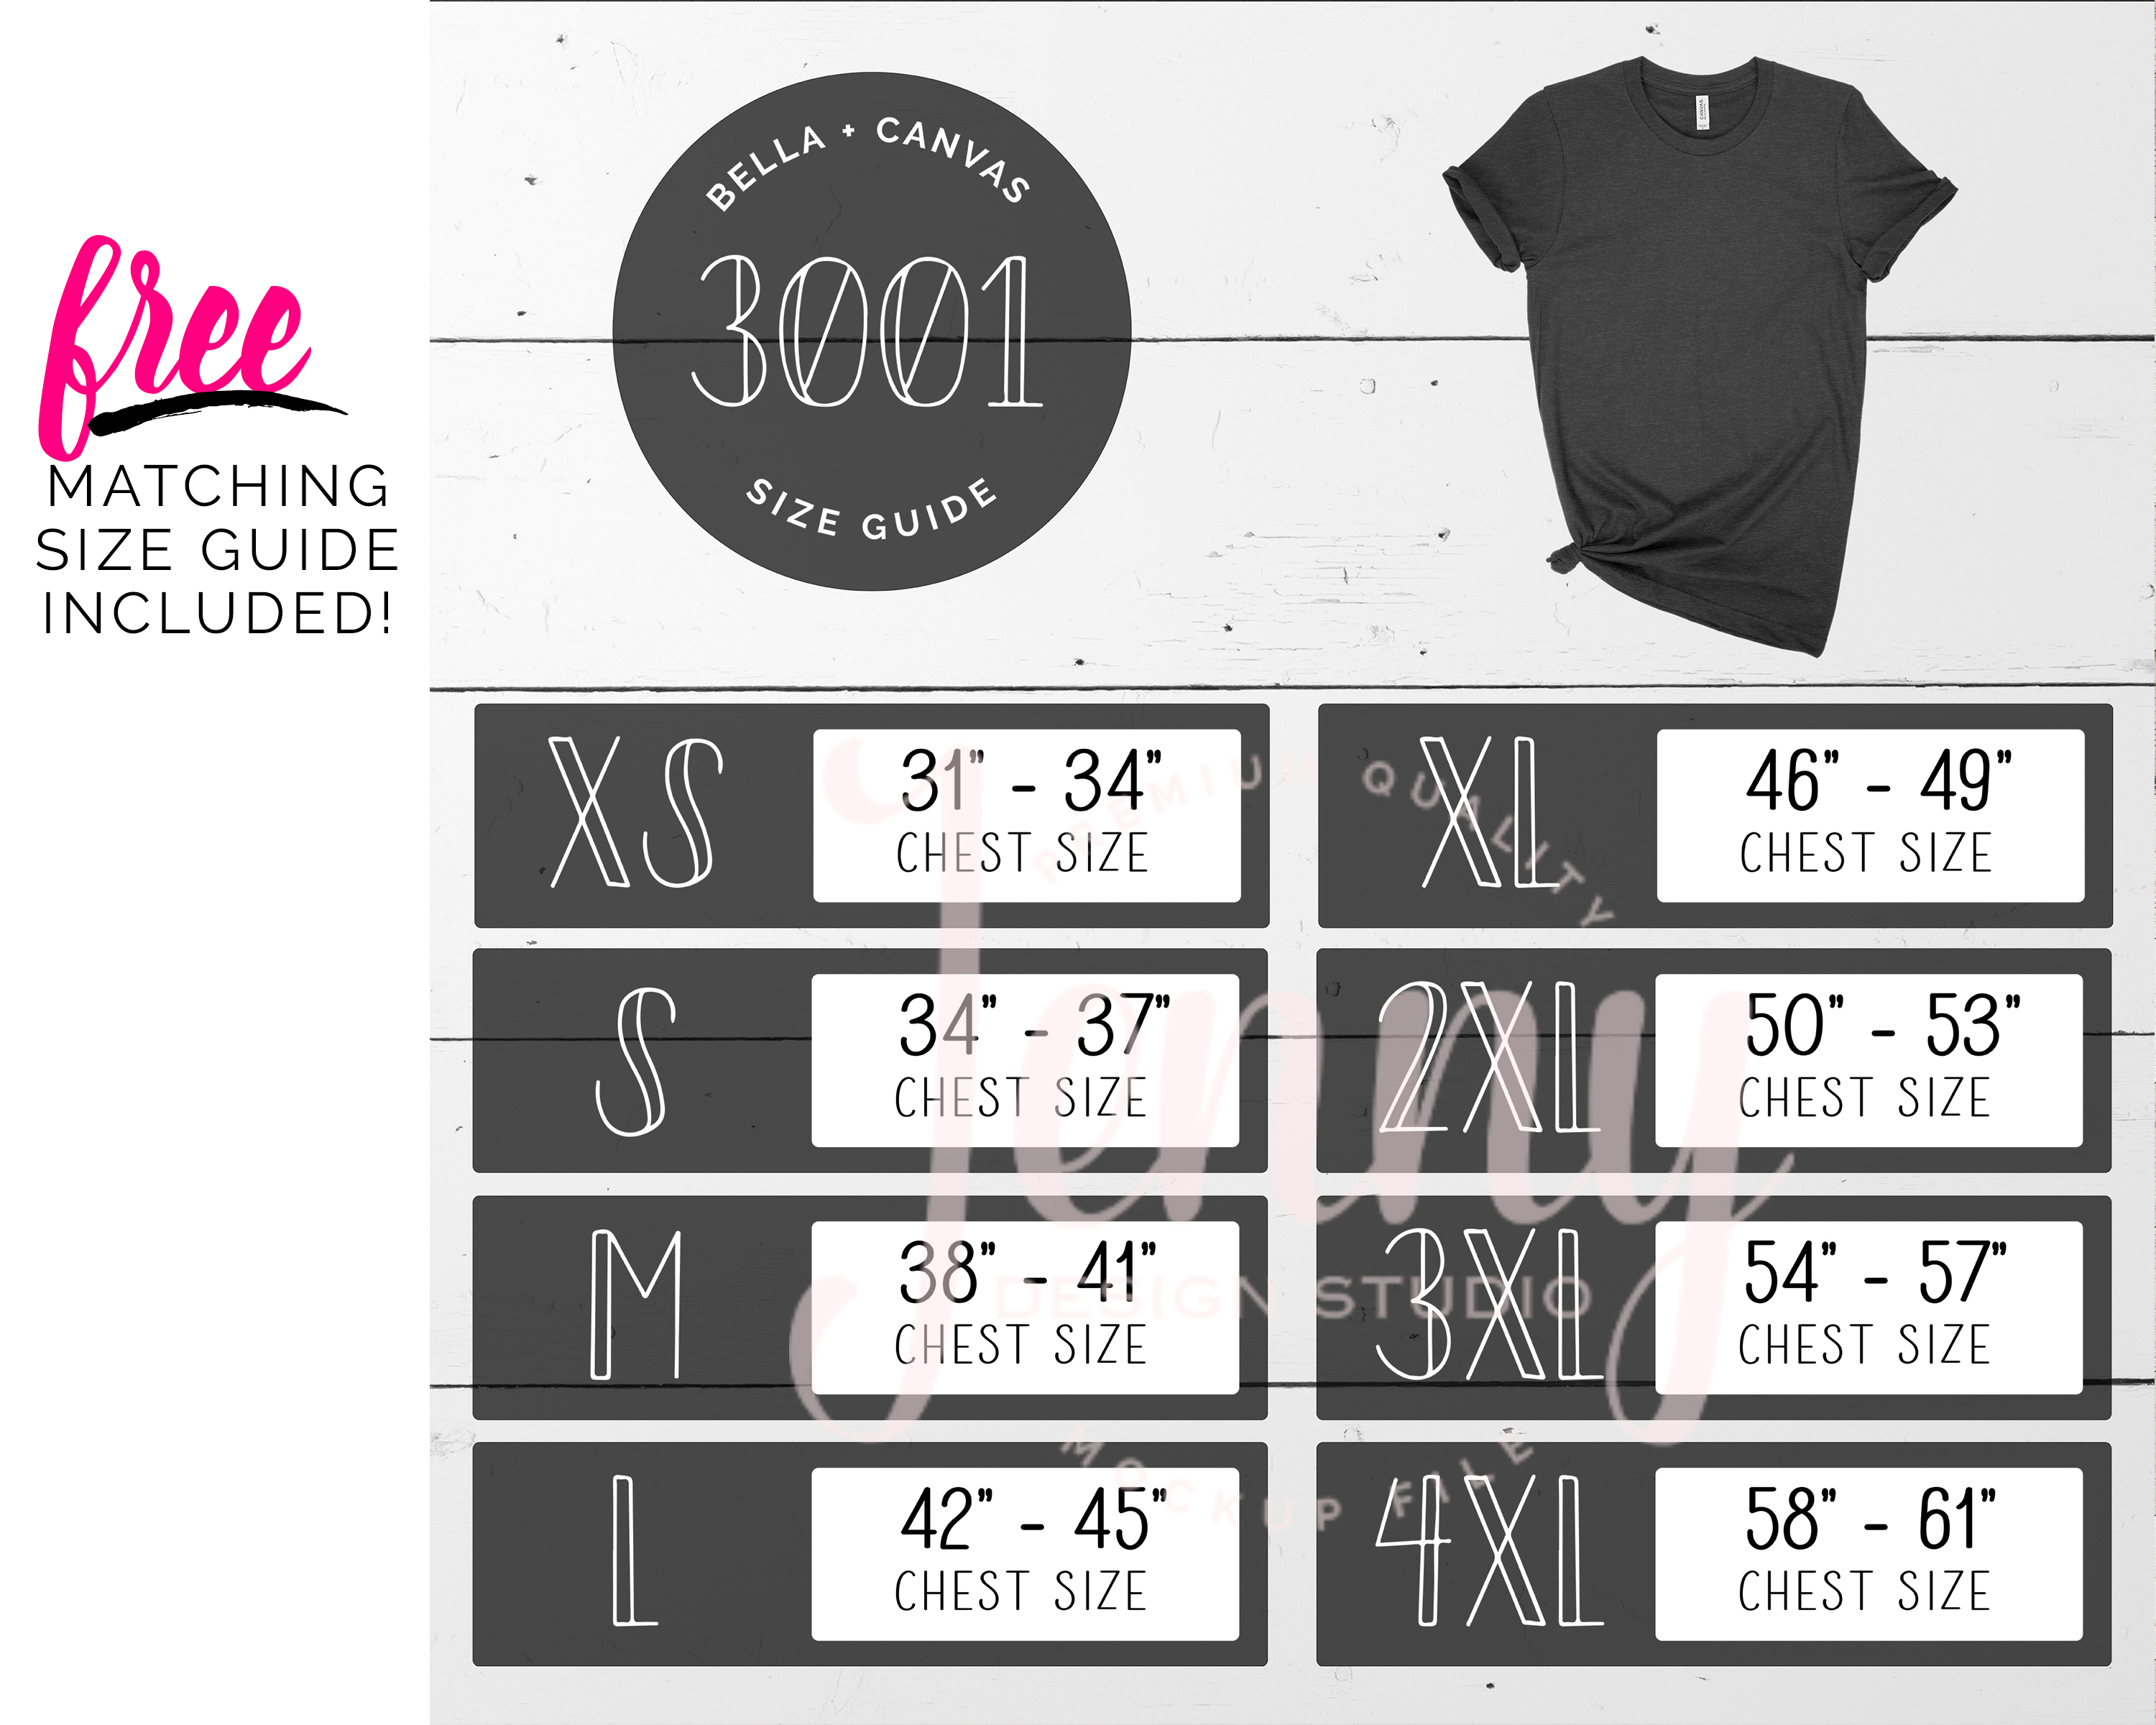 Bella Canvas 3001 Mockup Bundle, Knotted Tshirt Mockup example image 2